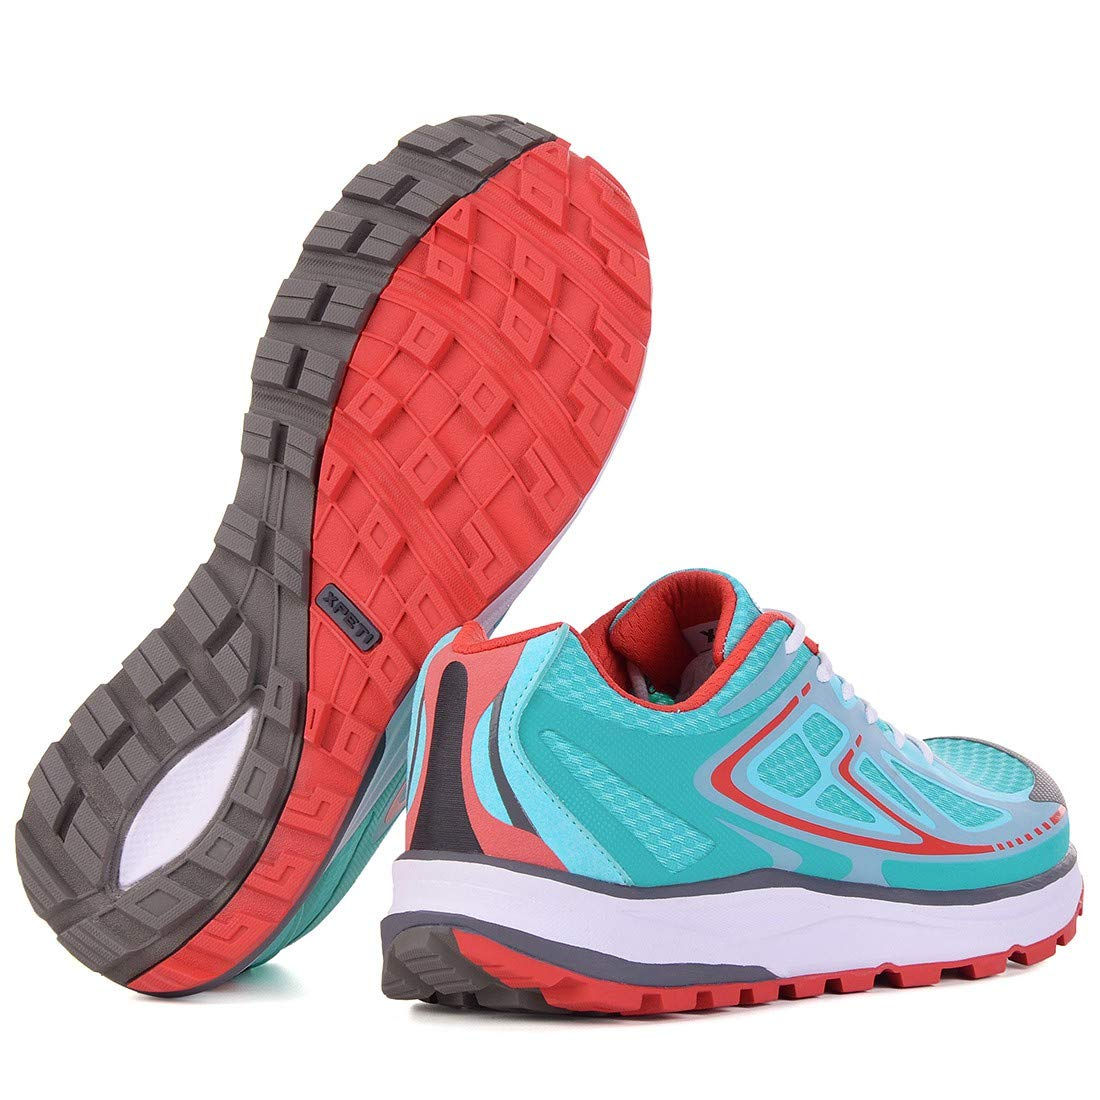 XPETI Cloud Chaussure Running Femme